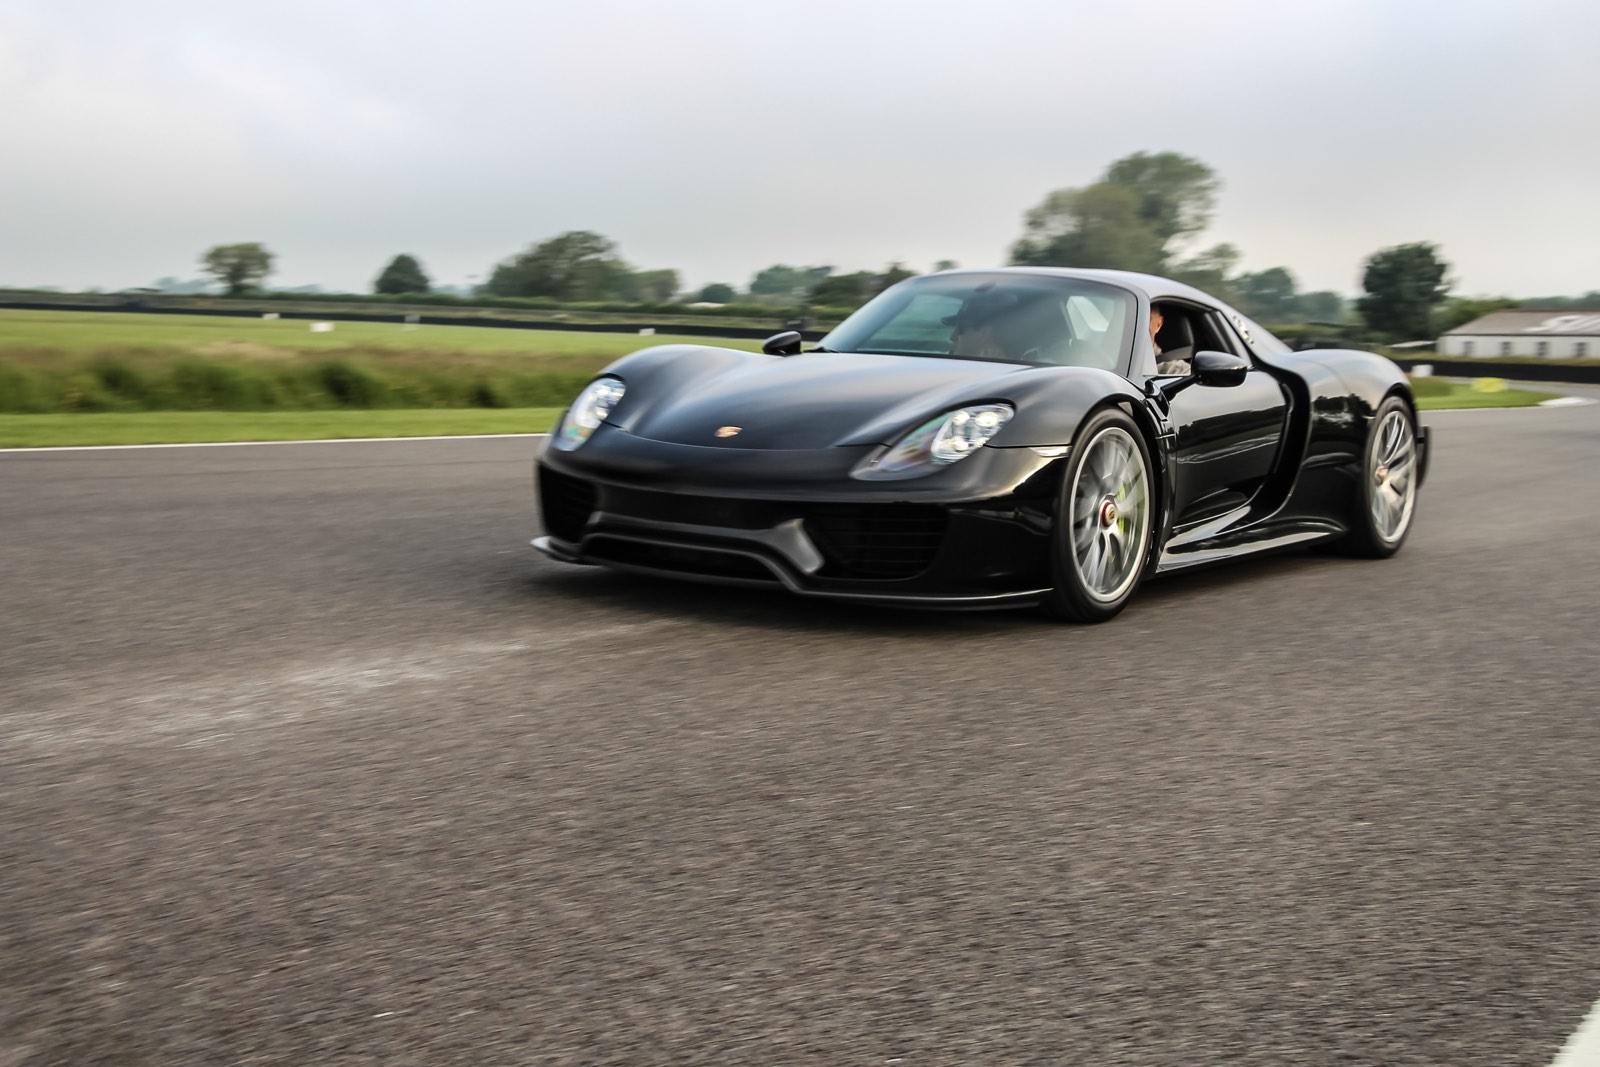 Goodwood Breakfast Club 2016 Full Throttle Porsche 918 Spyder Black